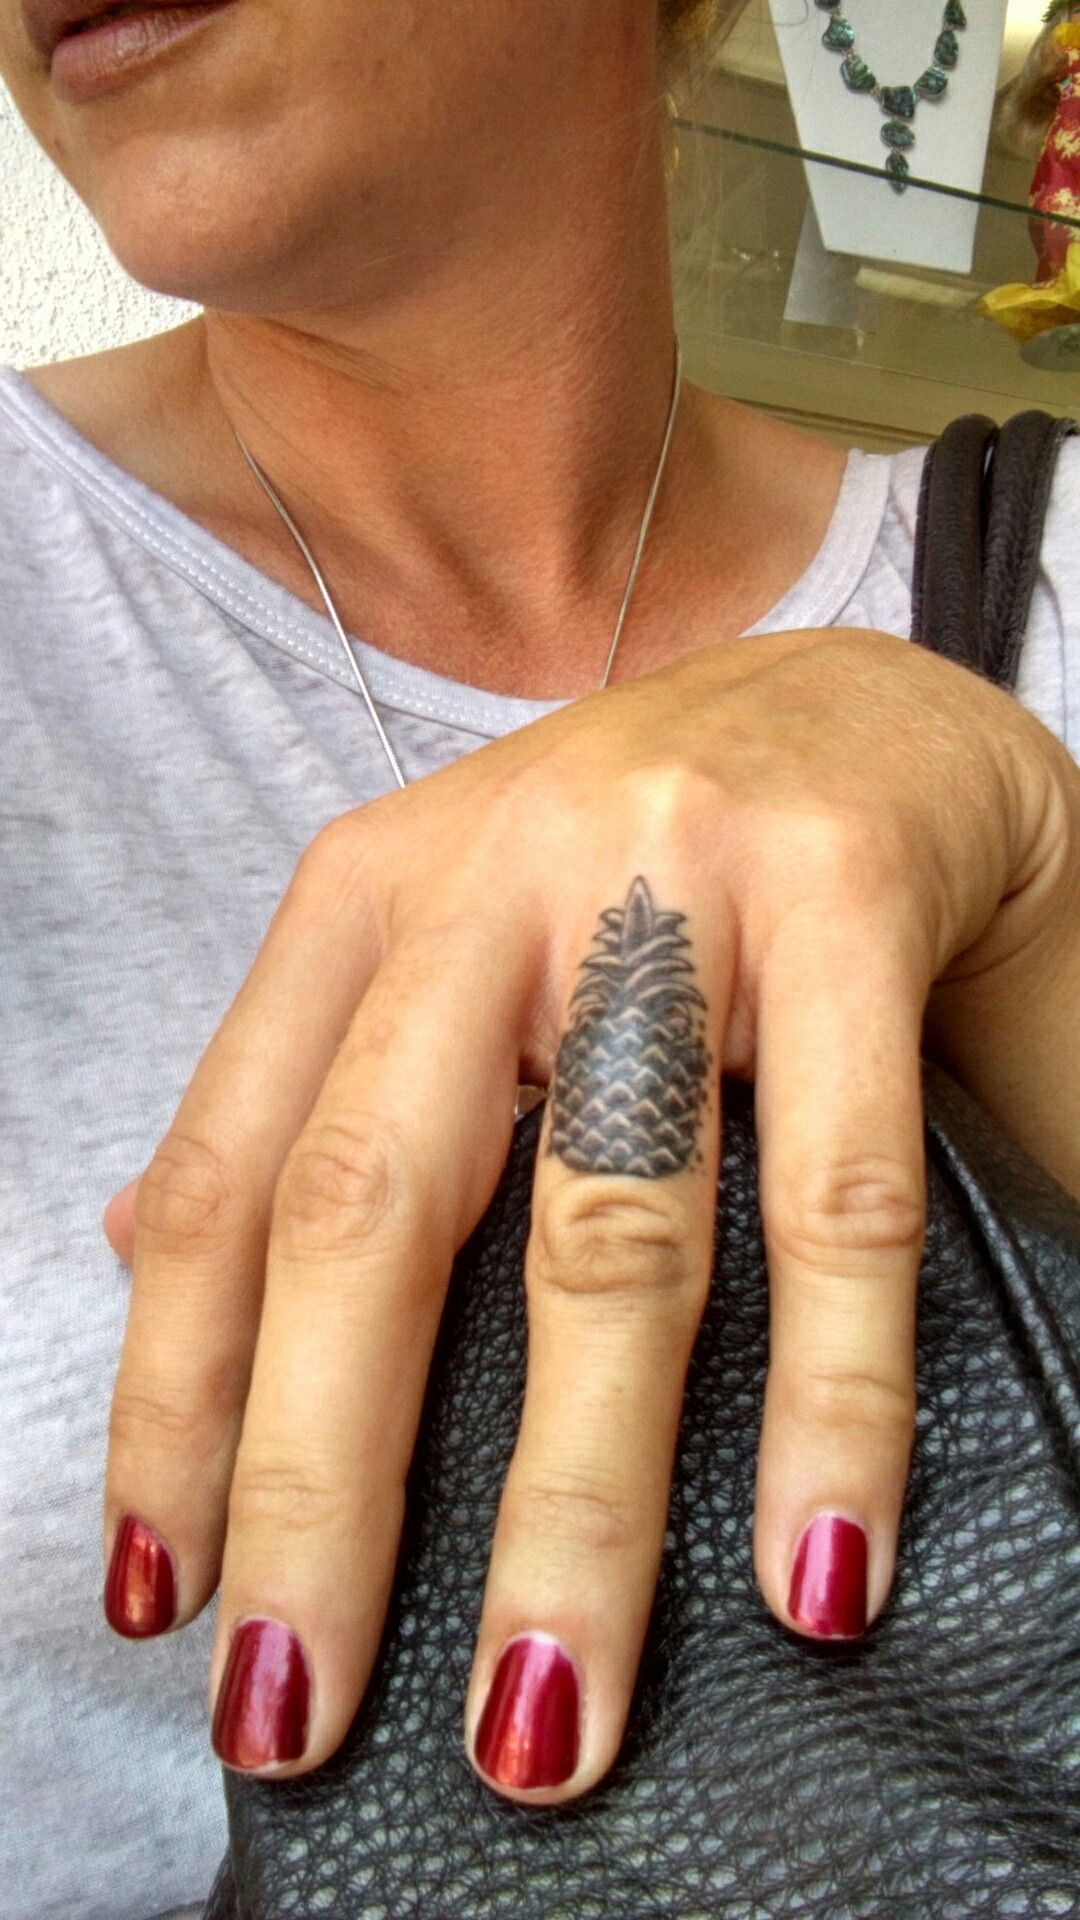 Ring Tattoo Cover Up : tattoo, cover, Pineapple, Finger, Tattoo., Tattoo, Cover-up, Cover, Tattoos,, Women,, Tattoos